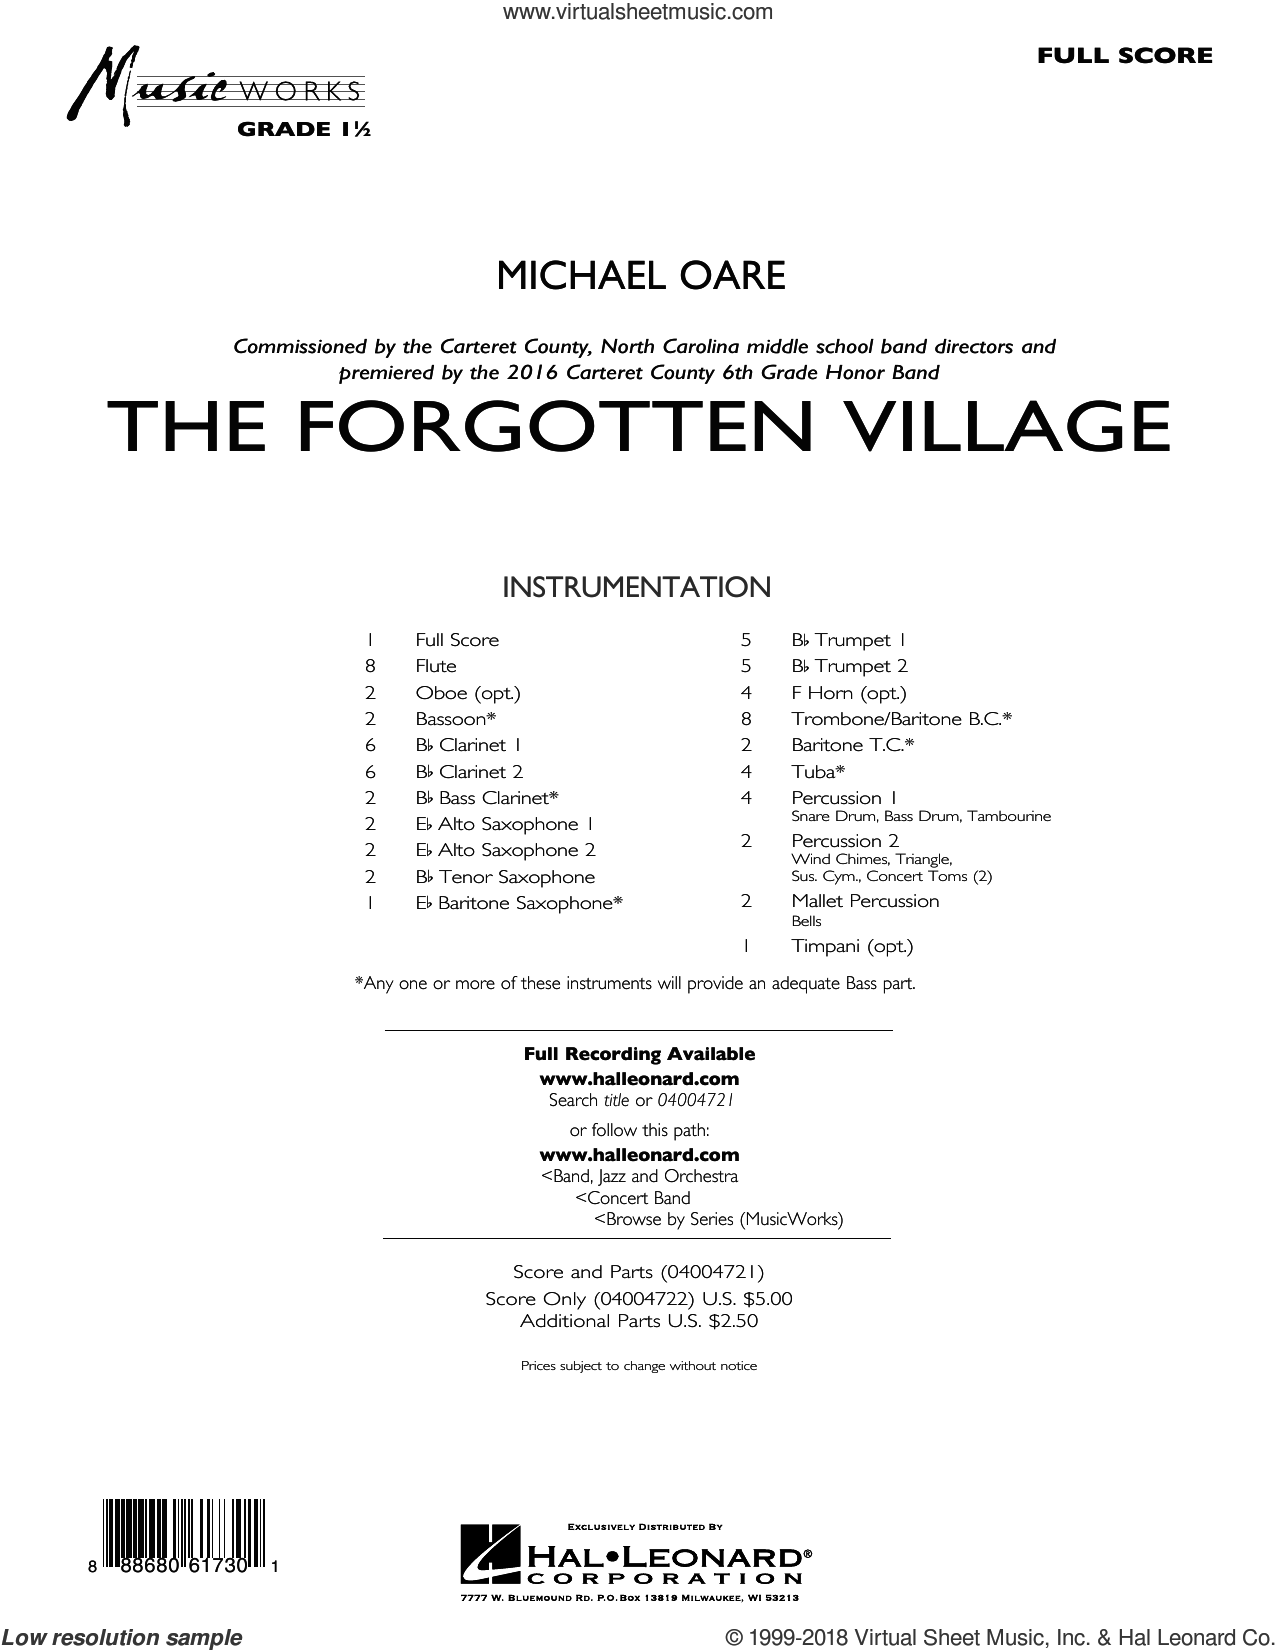 The Forgotten Village (COMPLETE) sheet music for concert band by Michael Oare, intermediate